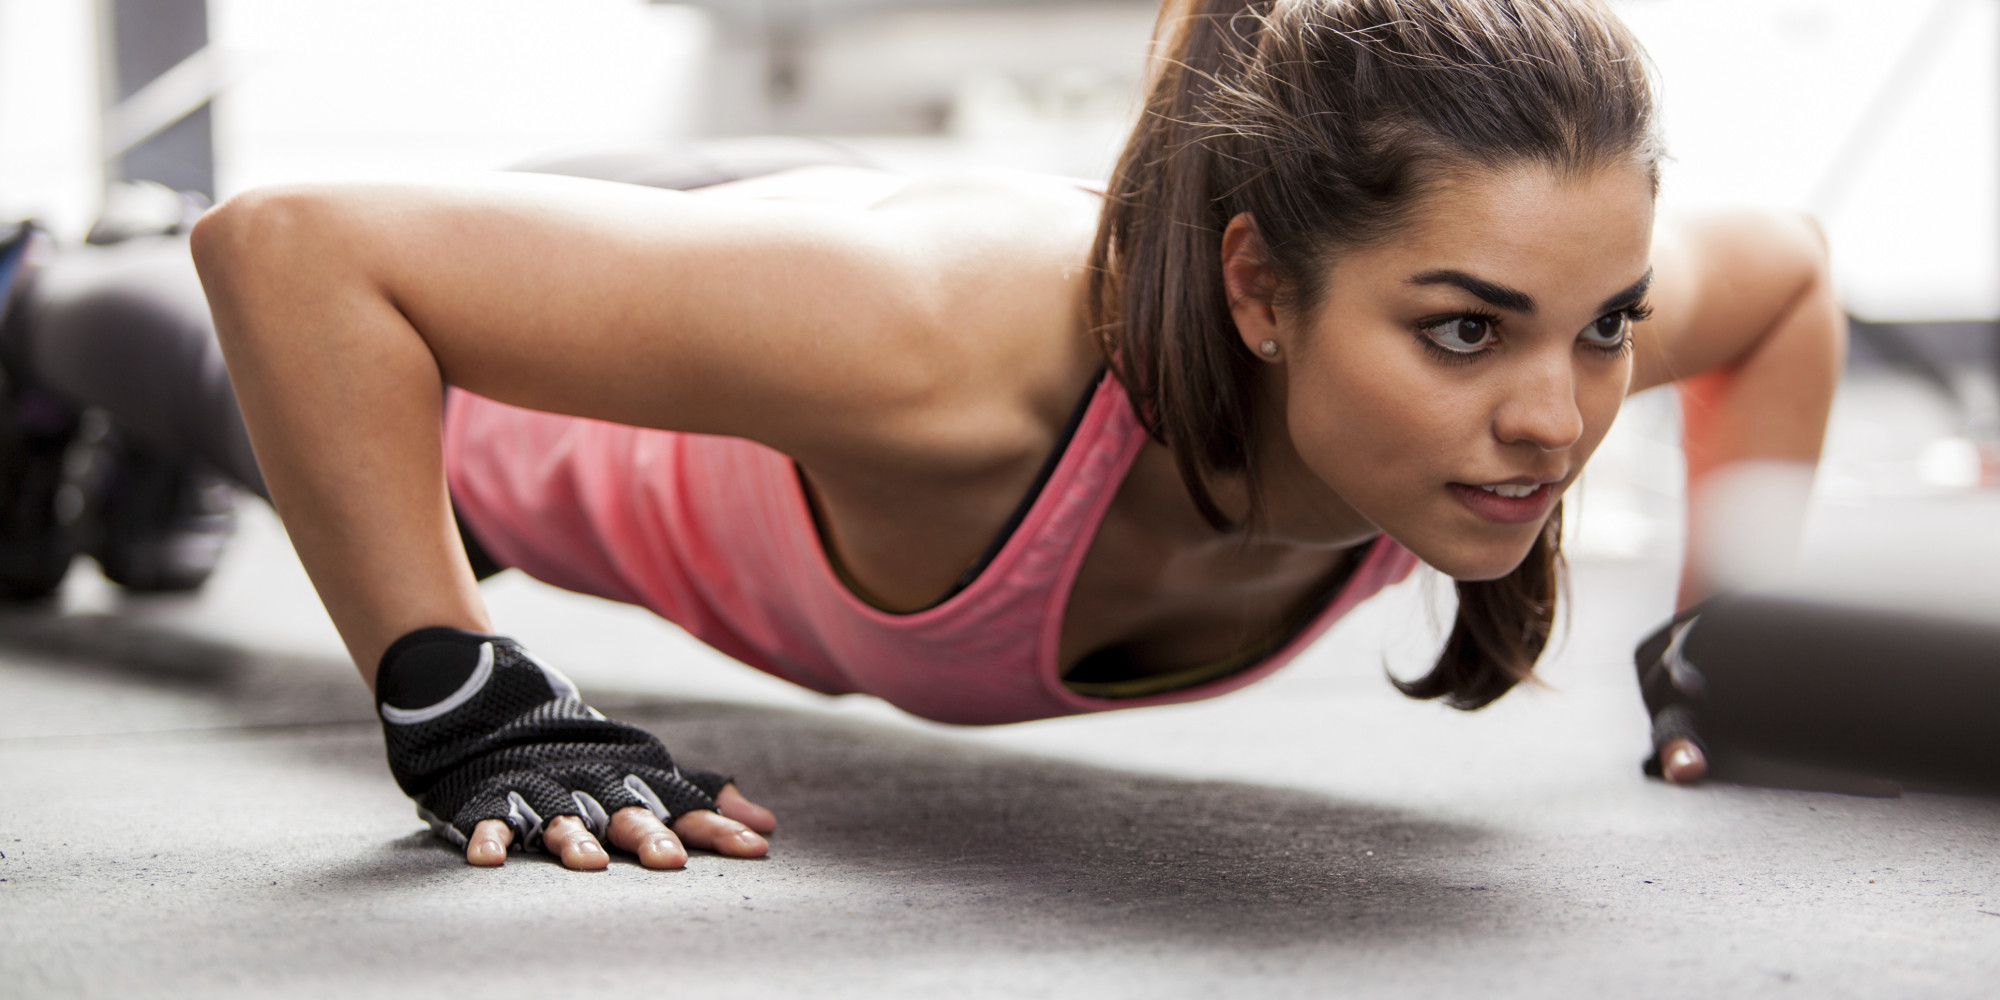 3 Tips to Master Push-Up Form | HuffPost